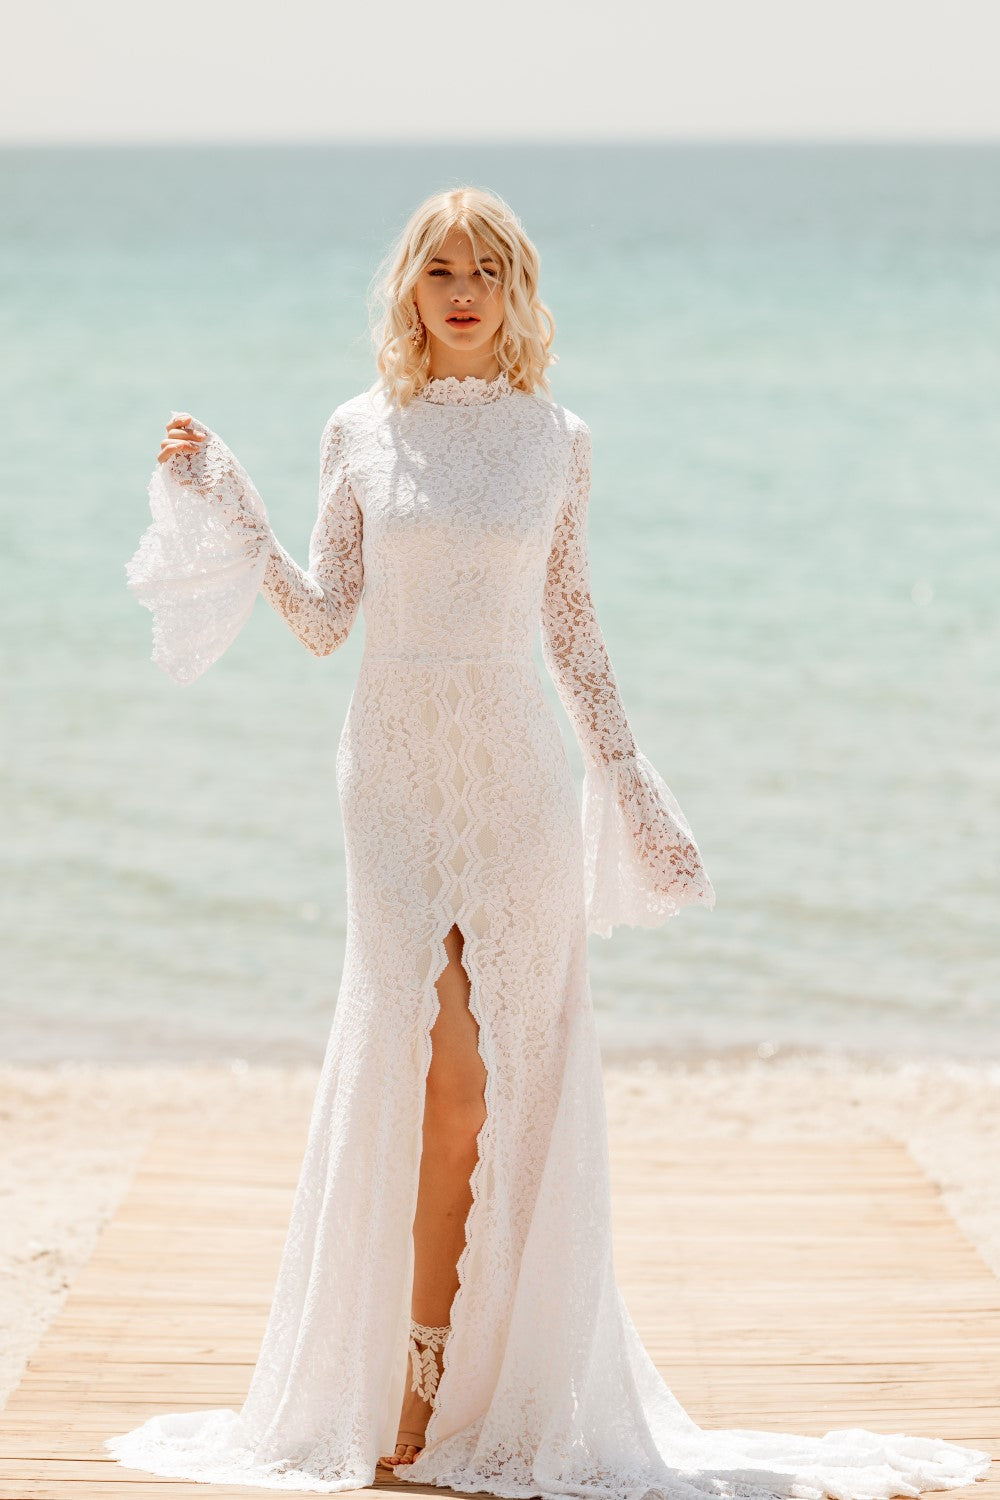 Virginia High Neck Mermaid Lace Wedding Dress - Wedding Dress - SuzannaM Designs